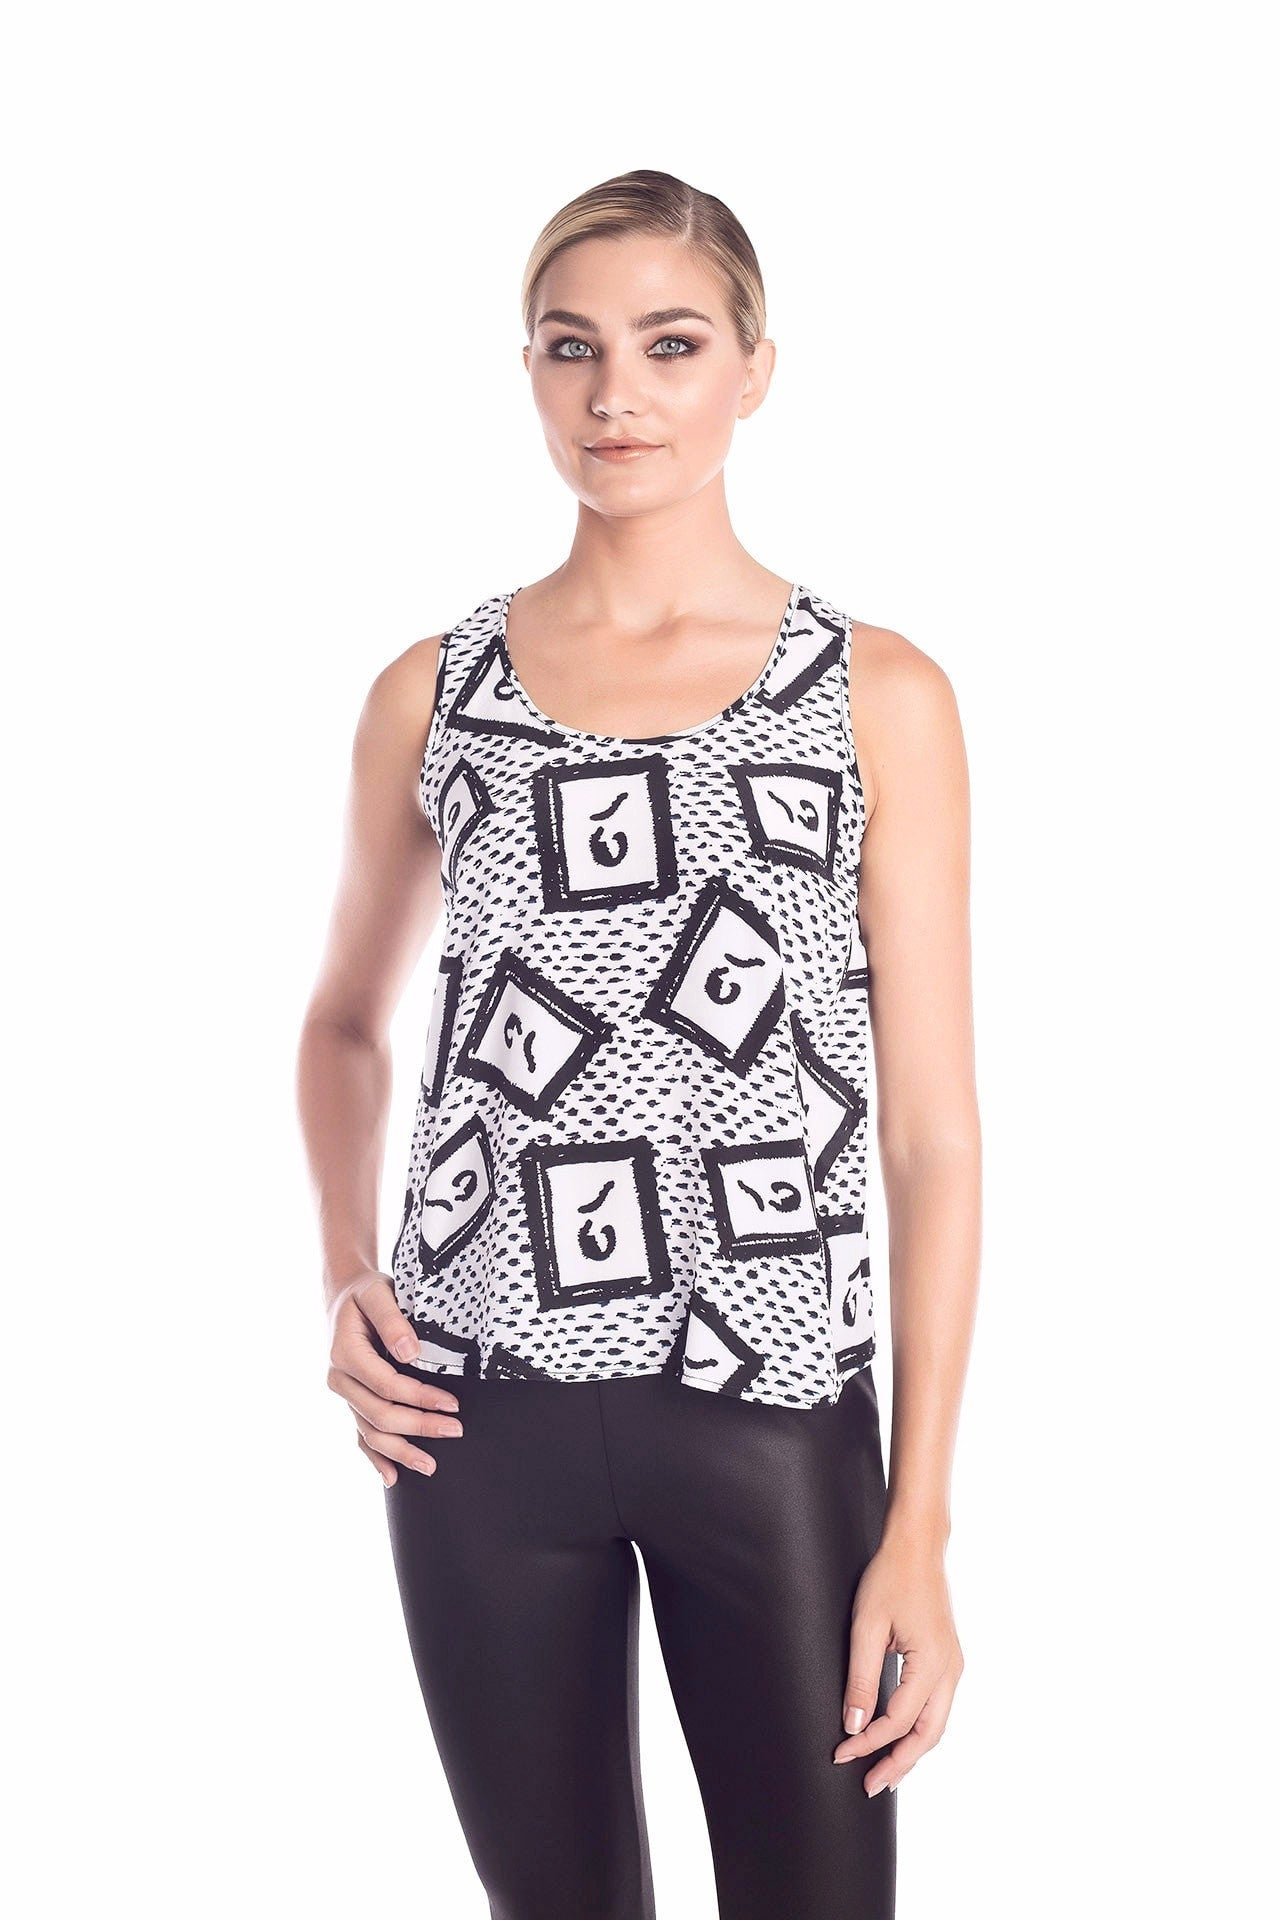 Kinetic Silk Tank Top - Black and White Painting Print Tank Tops - artTECA